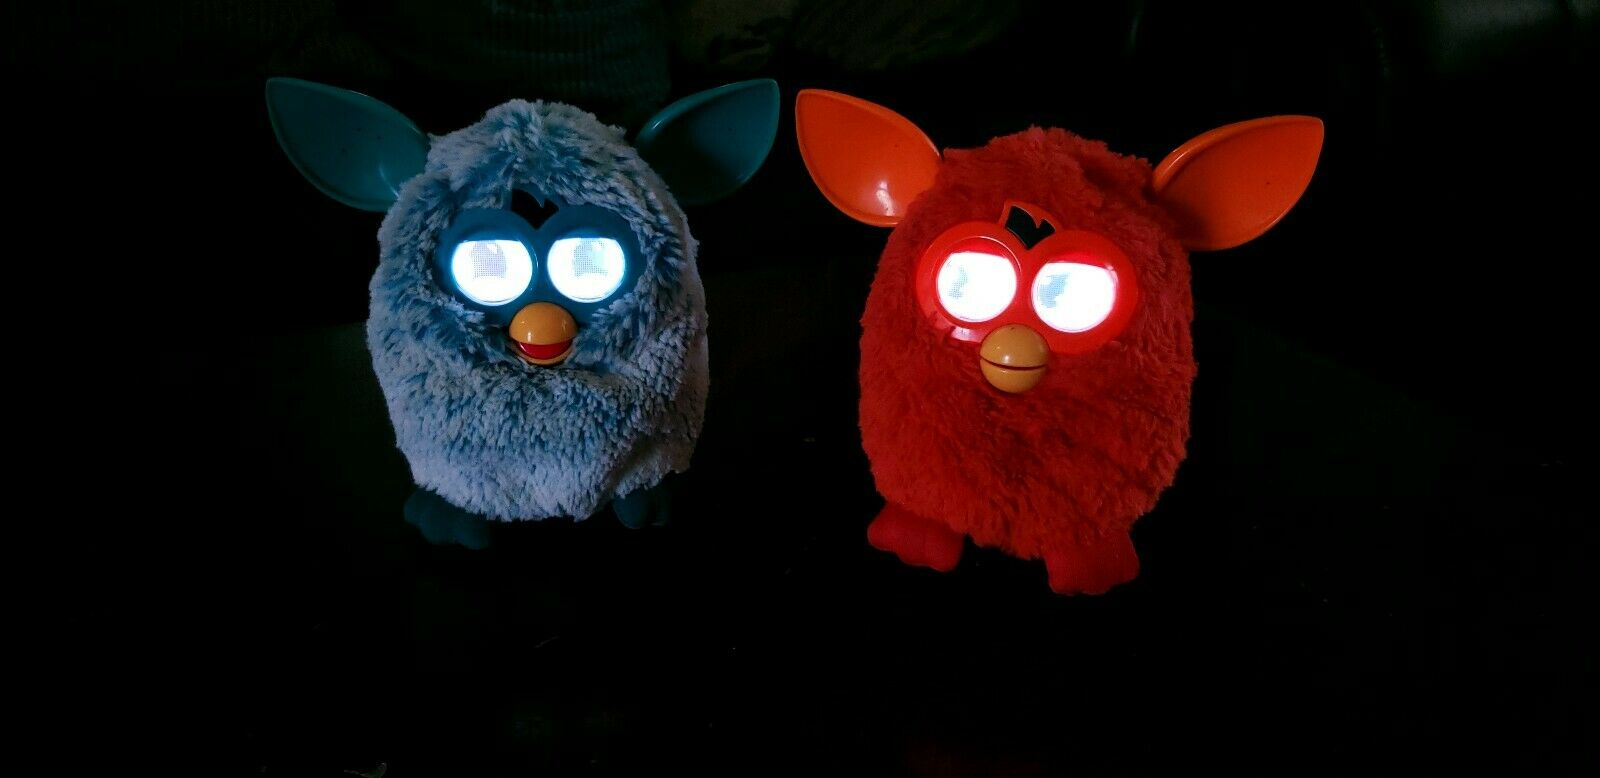 2012 Furby Interactive Toy Figures - Lot Of 2 Turquoise Teal And orange